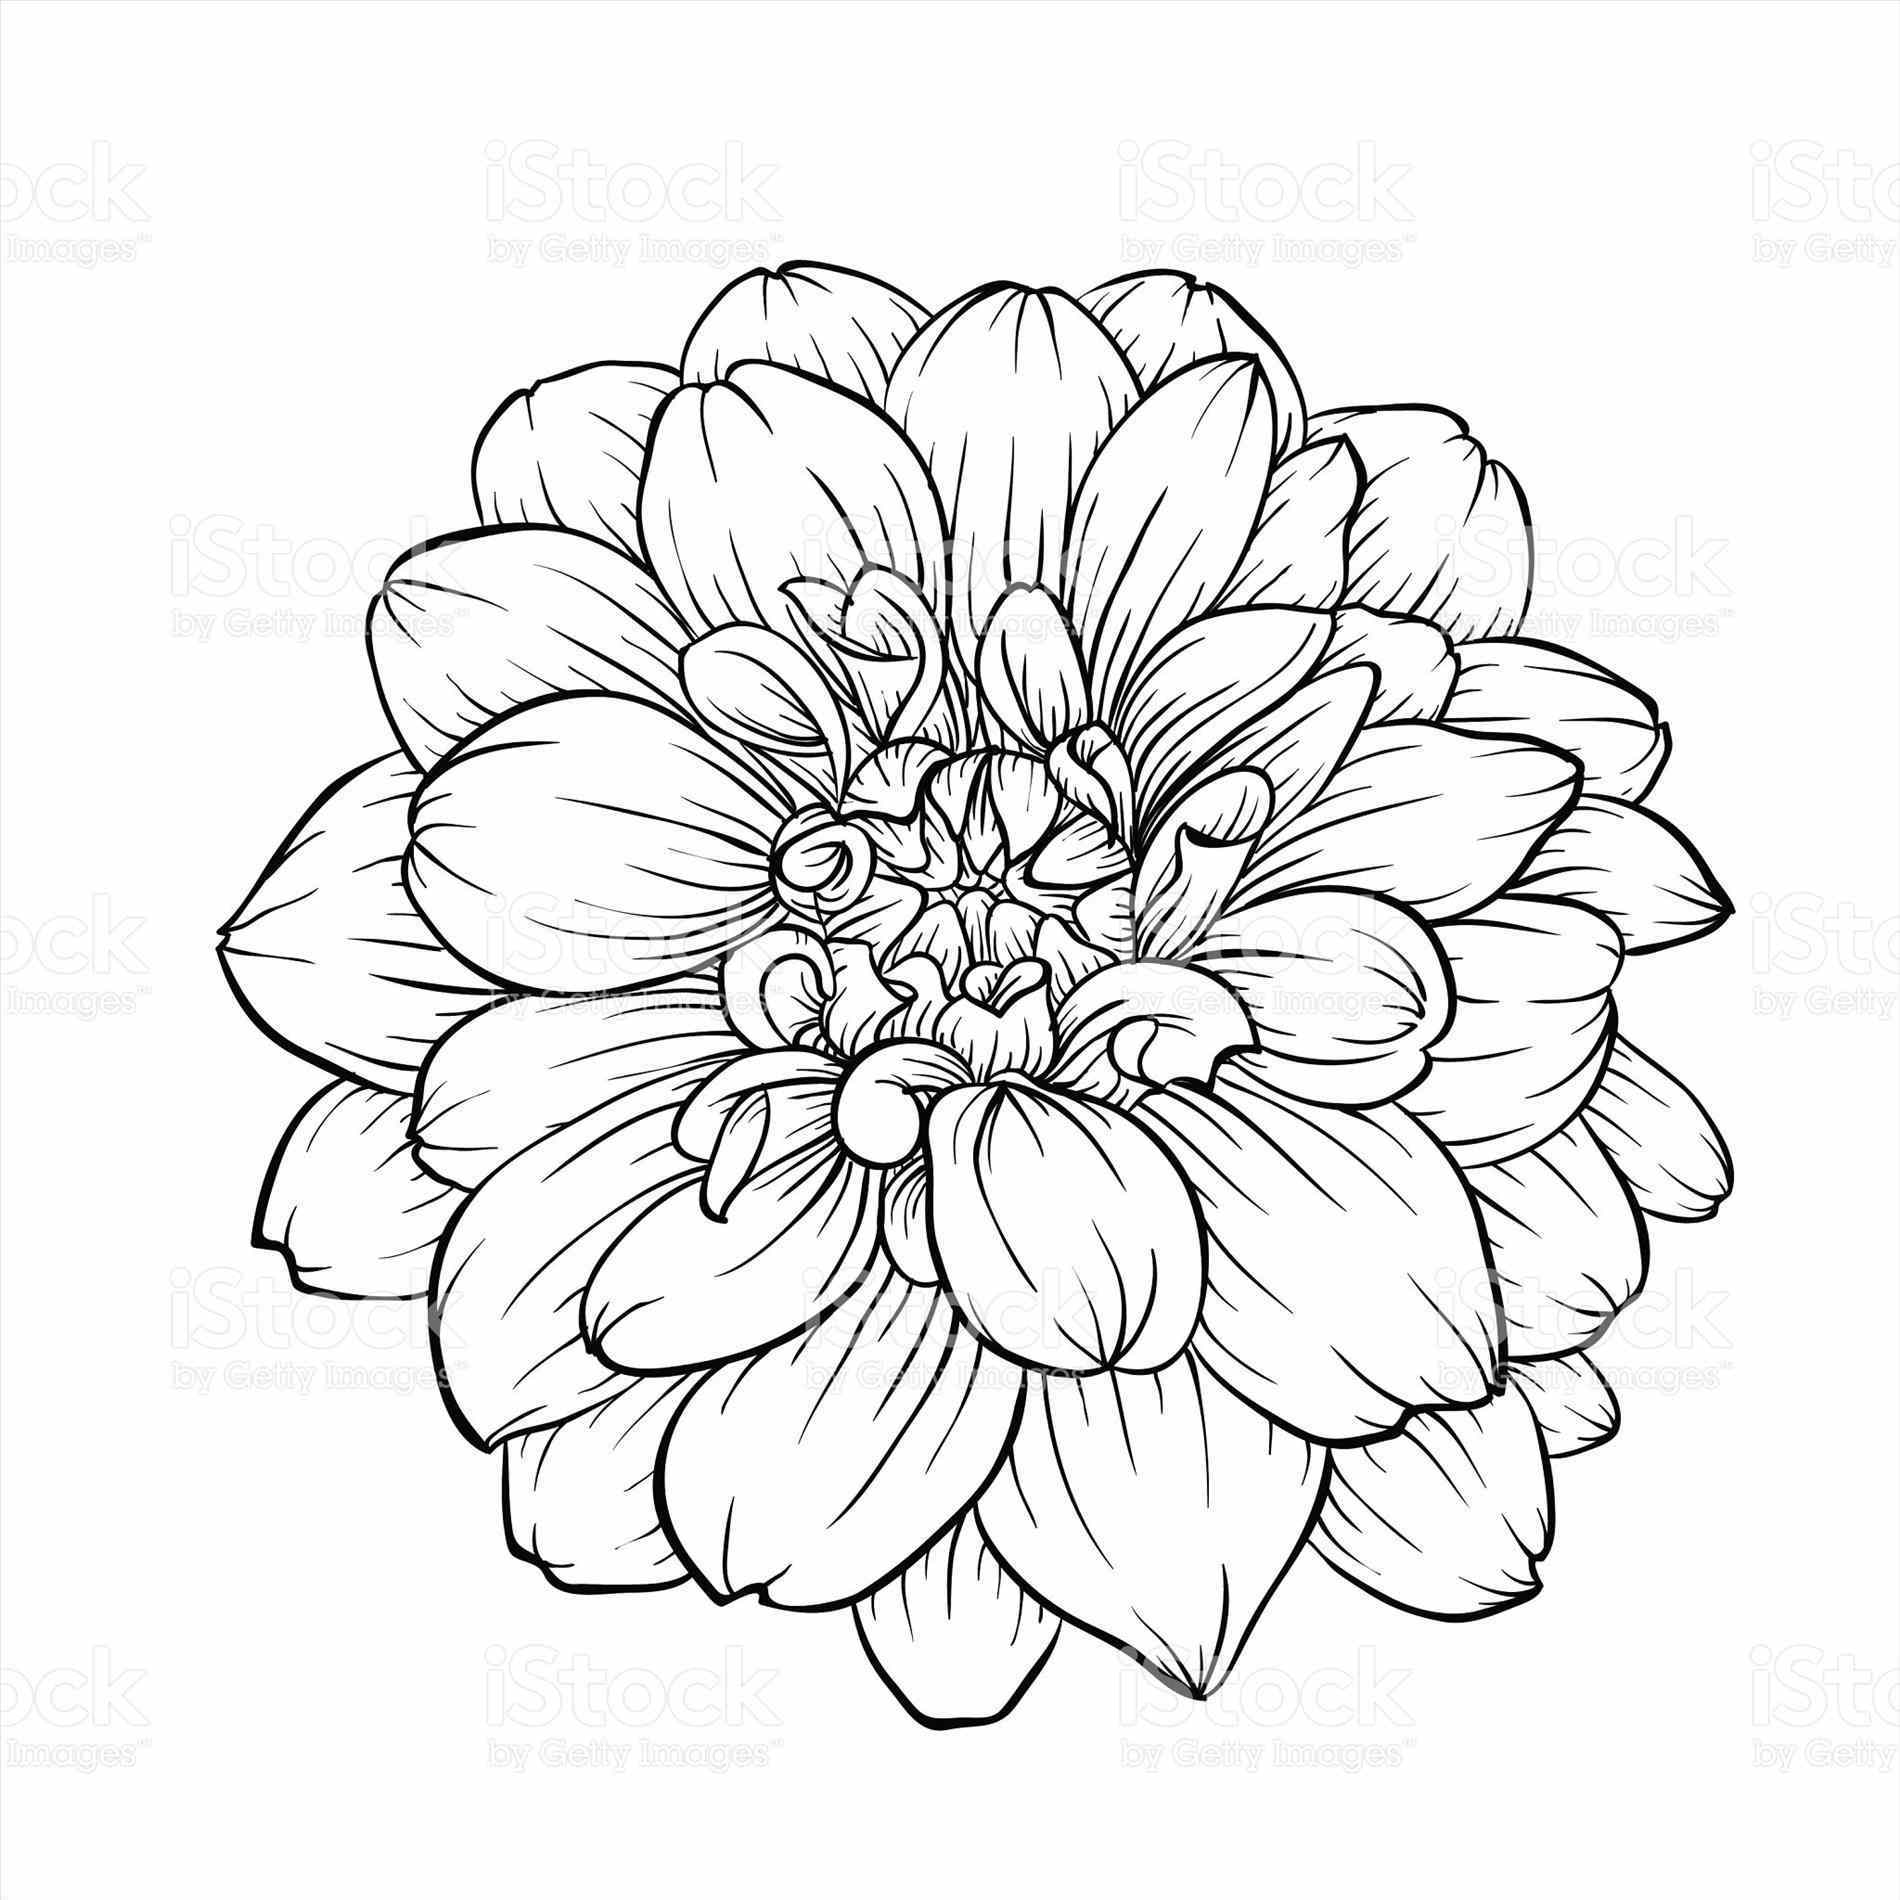 Flower drawing tumblr at getdrawings free for personal use 1900x1900 on dongetrabi rose bouquet tumblr dongetrabi black and white mightylinksfo